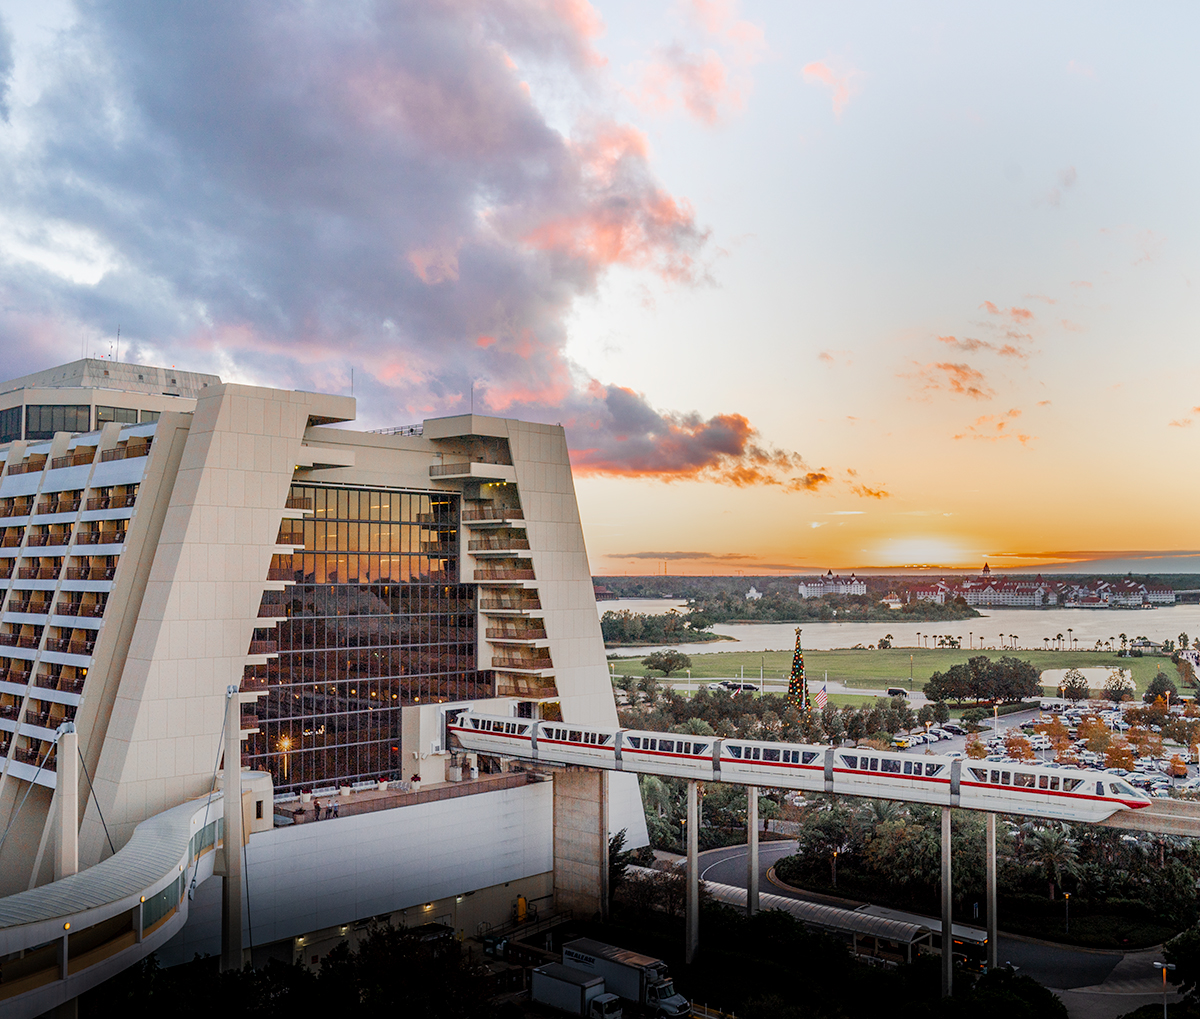 Monorail-Disneys-Contemporary-Resort